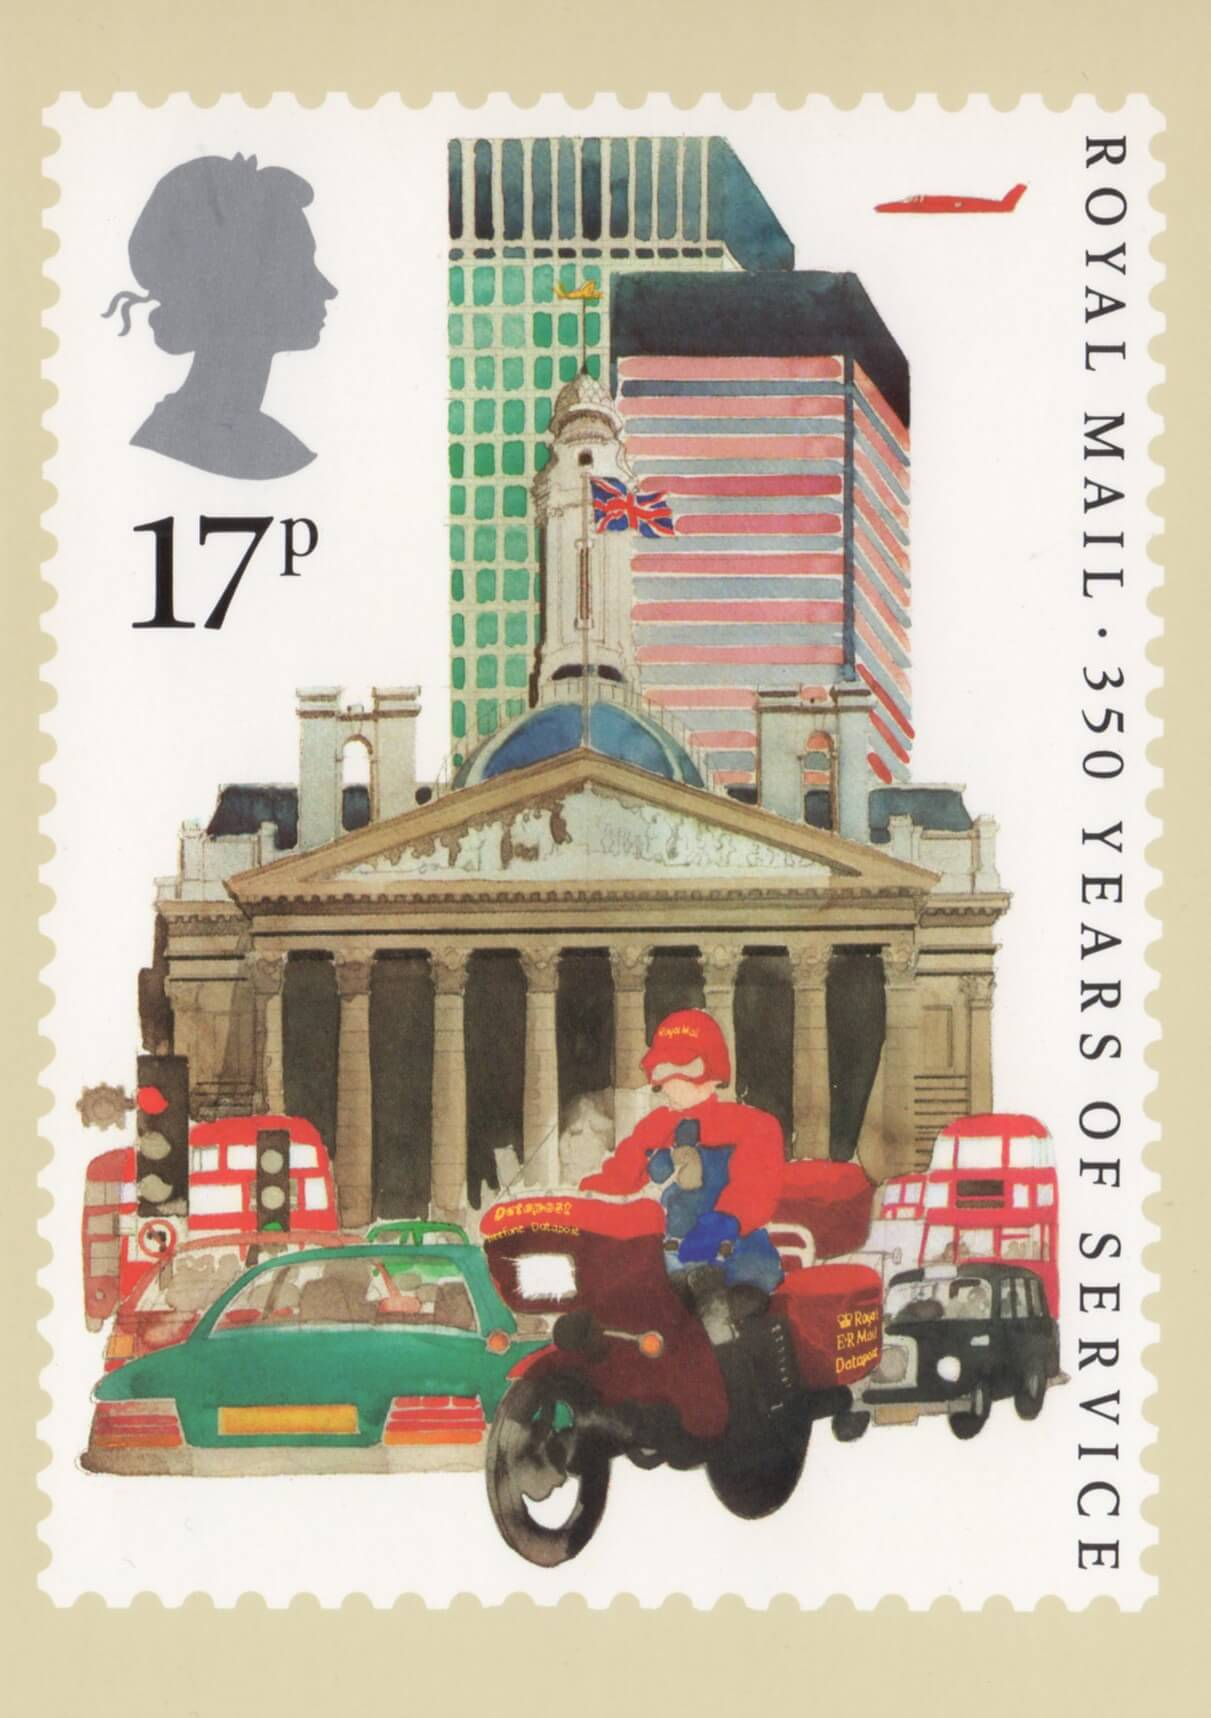 350 Years Of Royal Mail Public Postal Service 1985